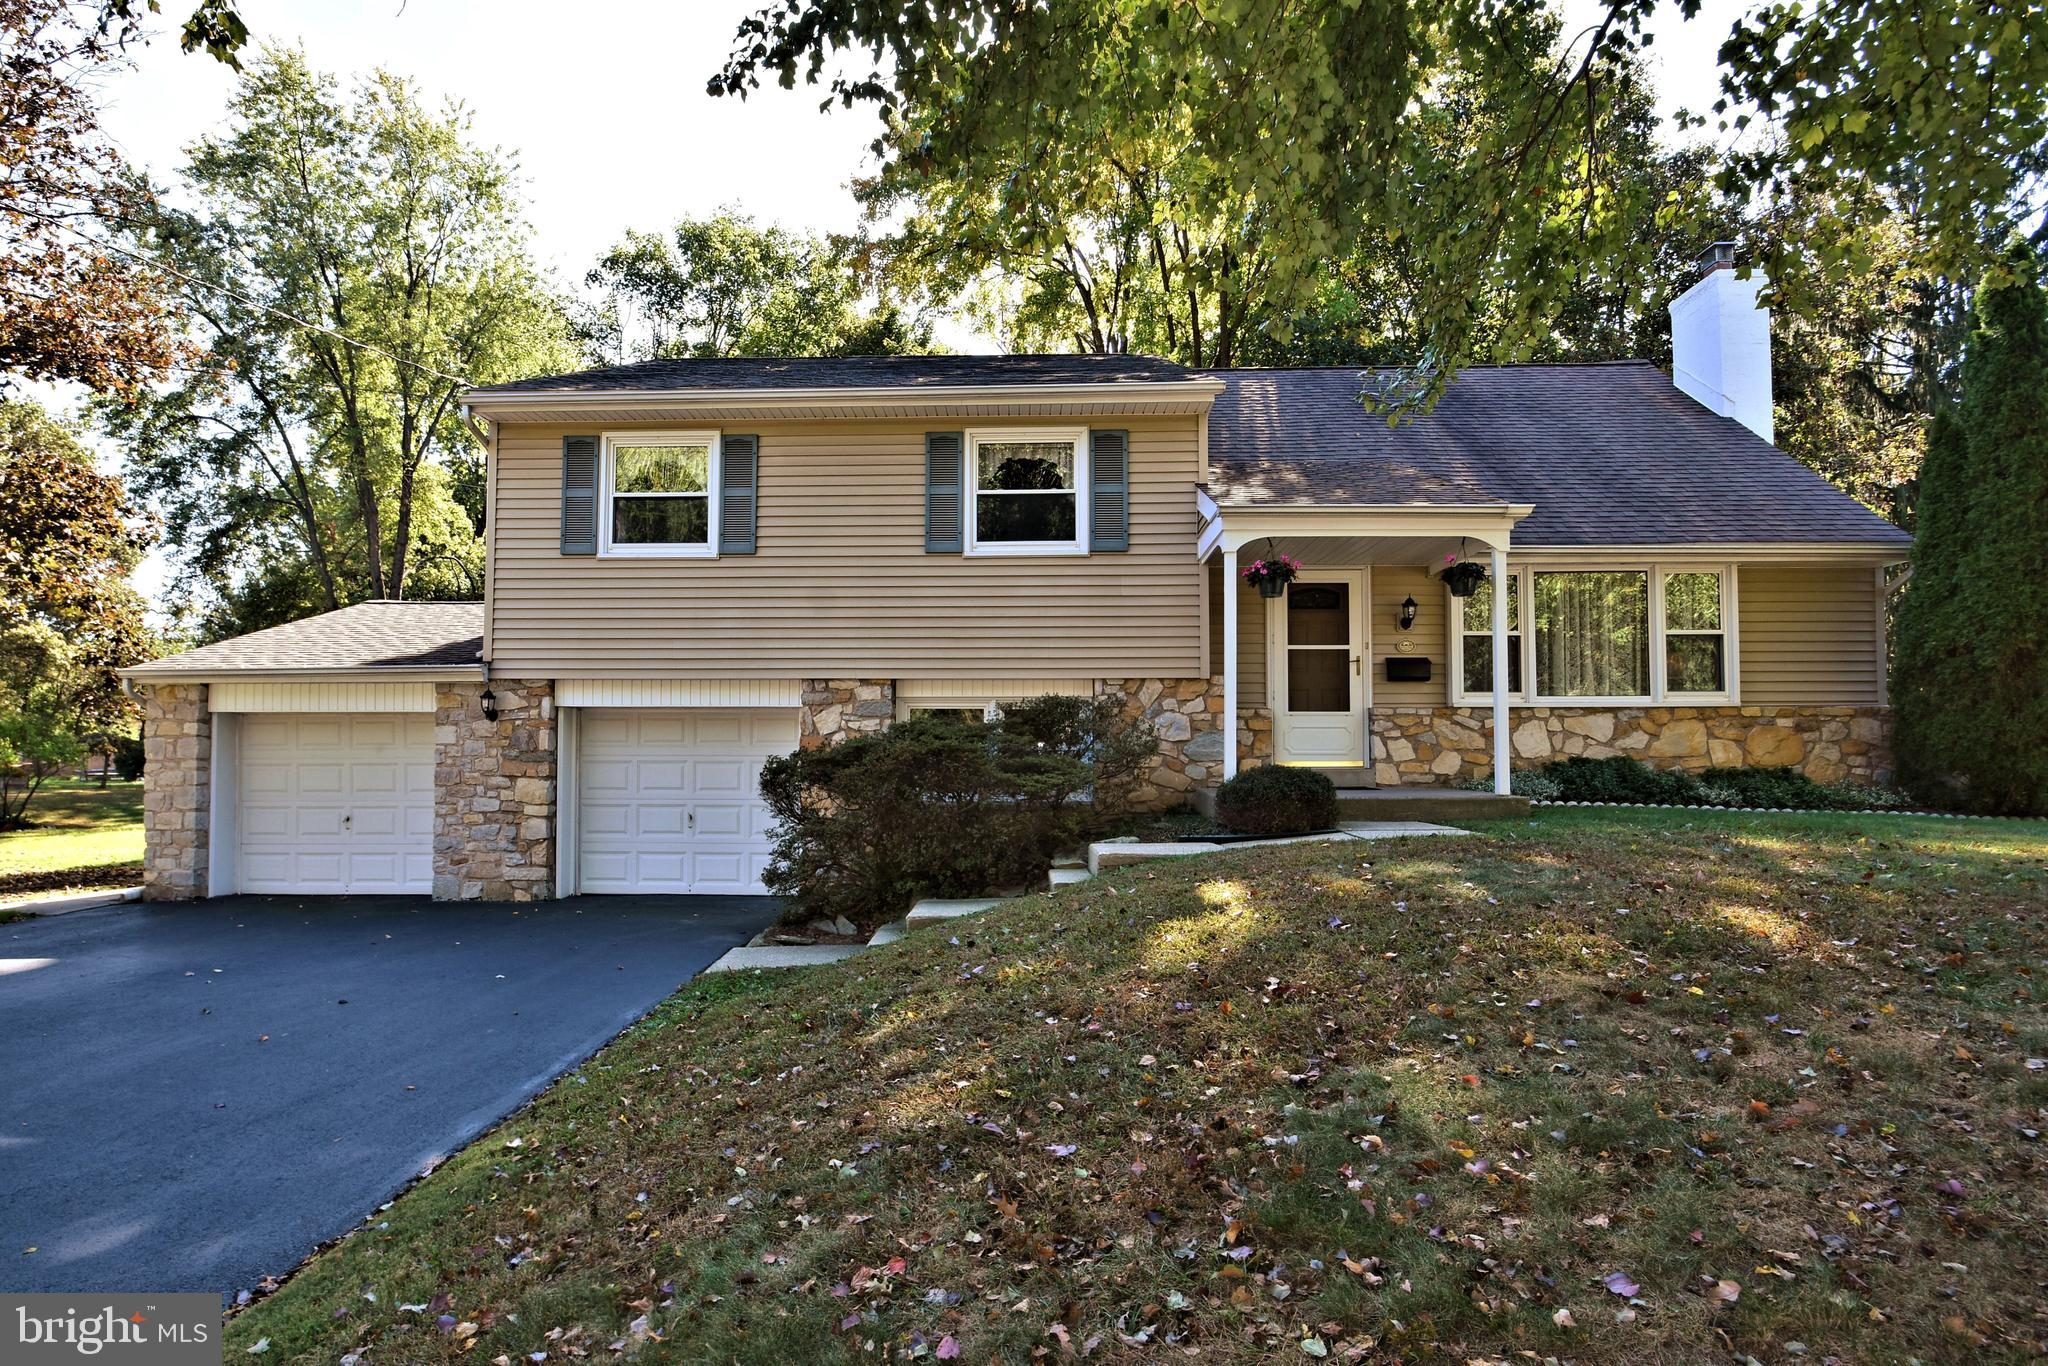 1647 AIDENN LAIR ROAD, DRESHER, PA 19025